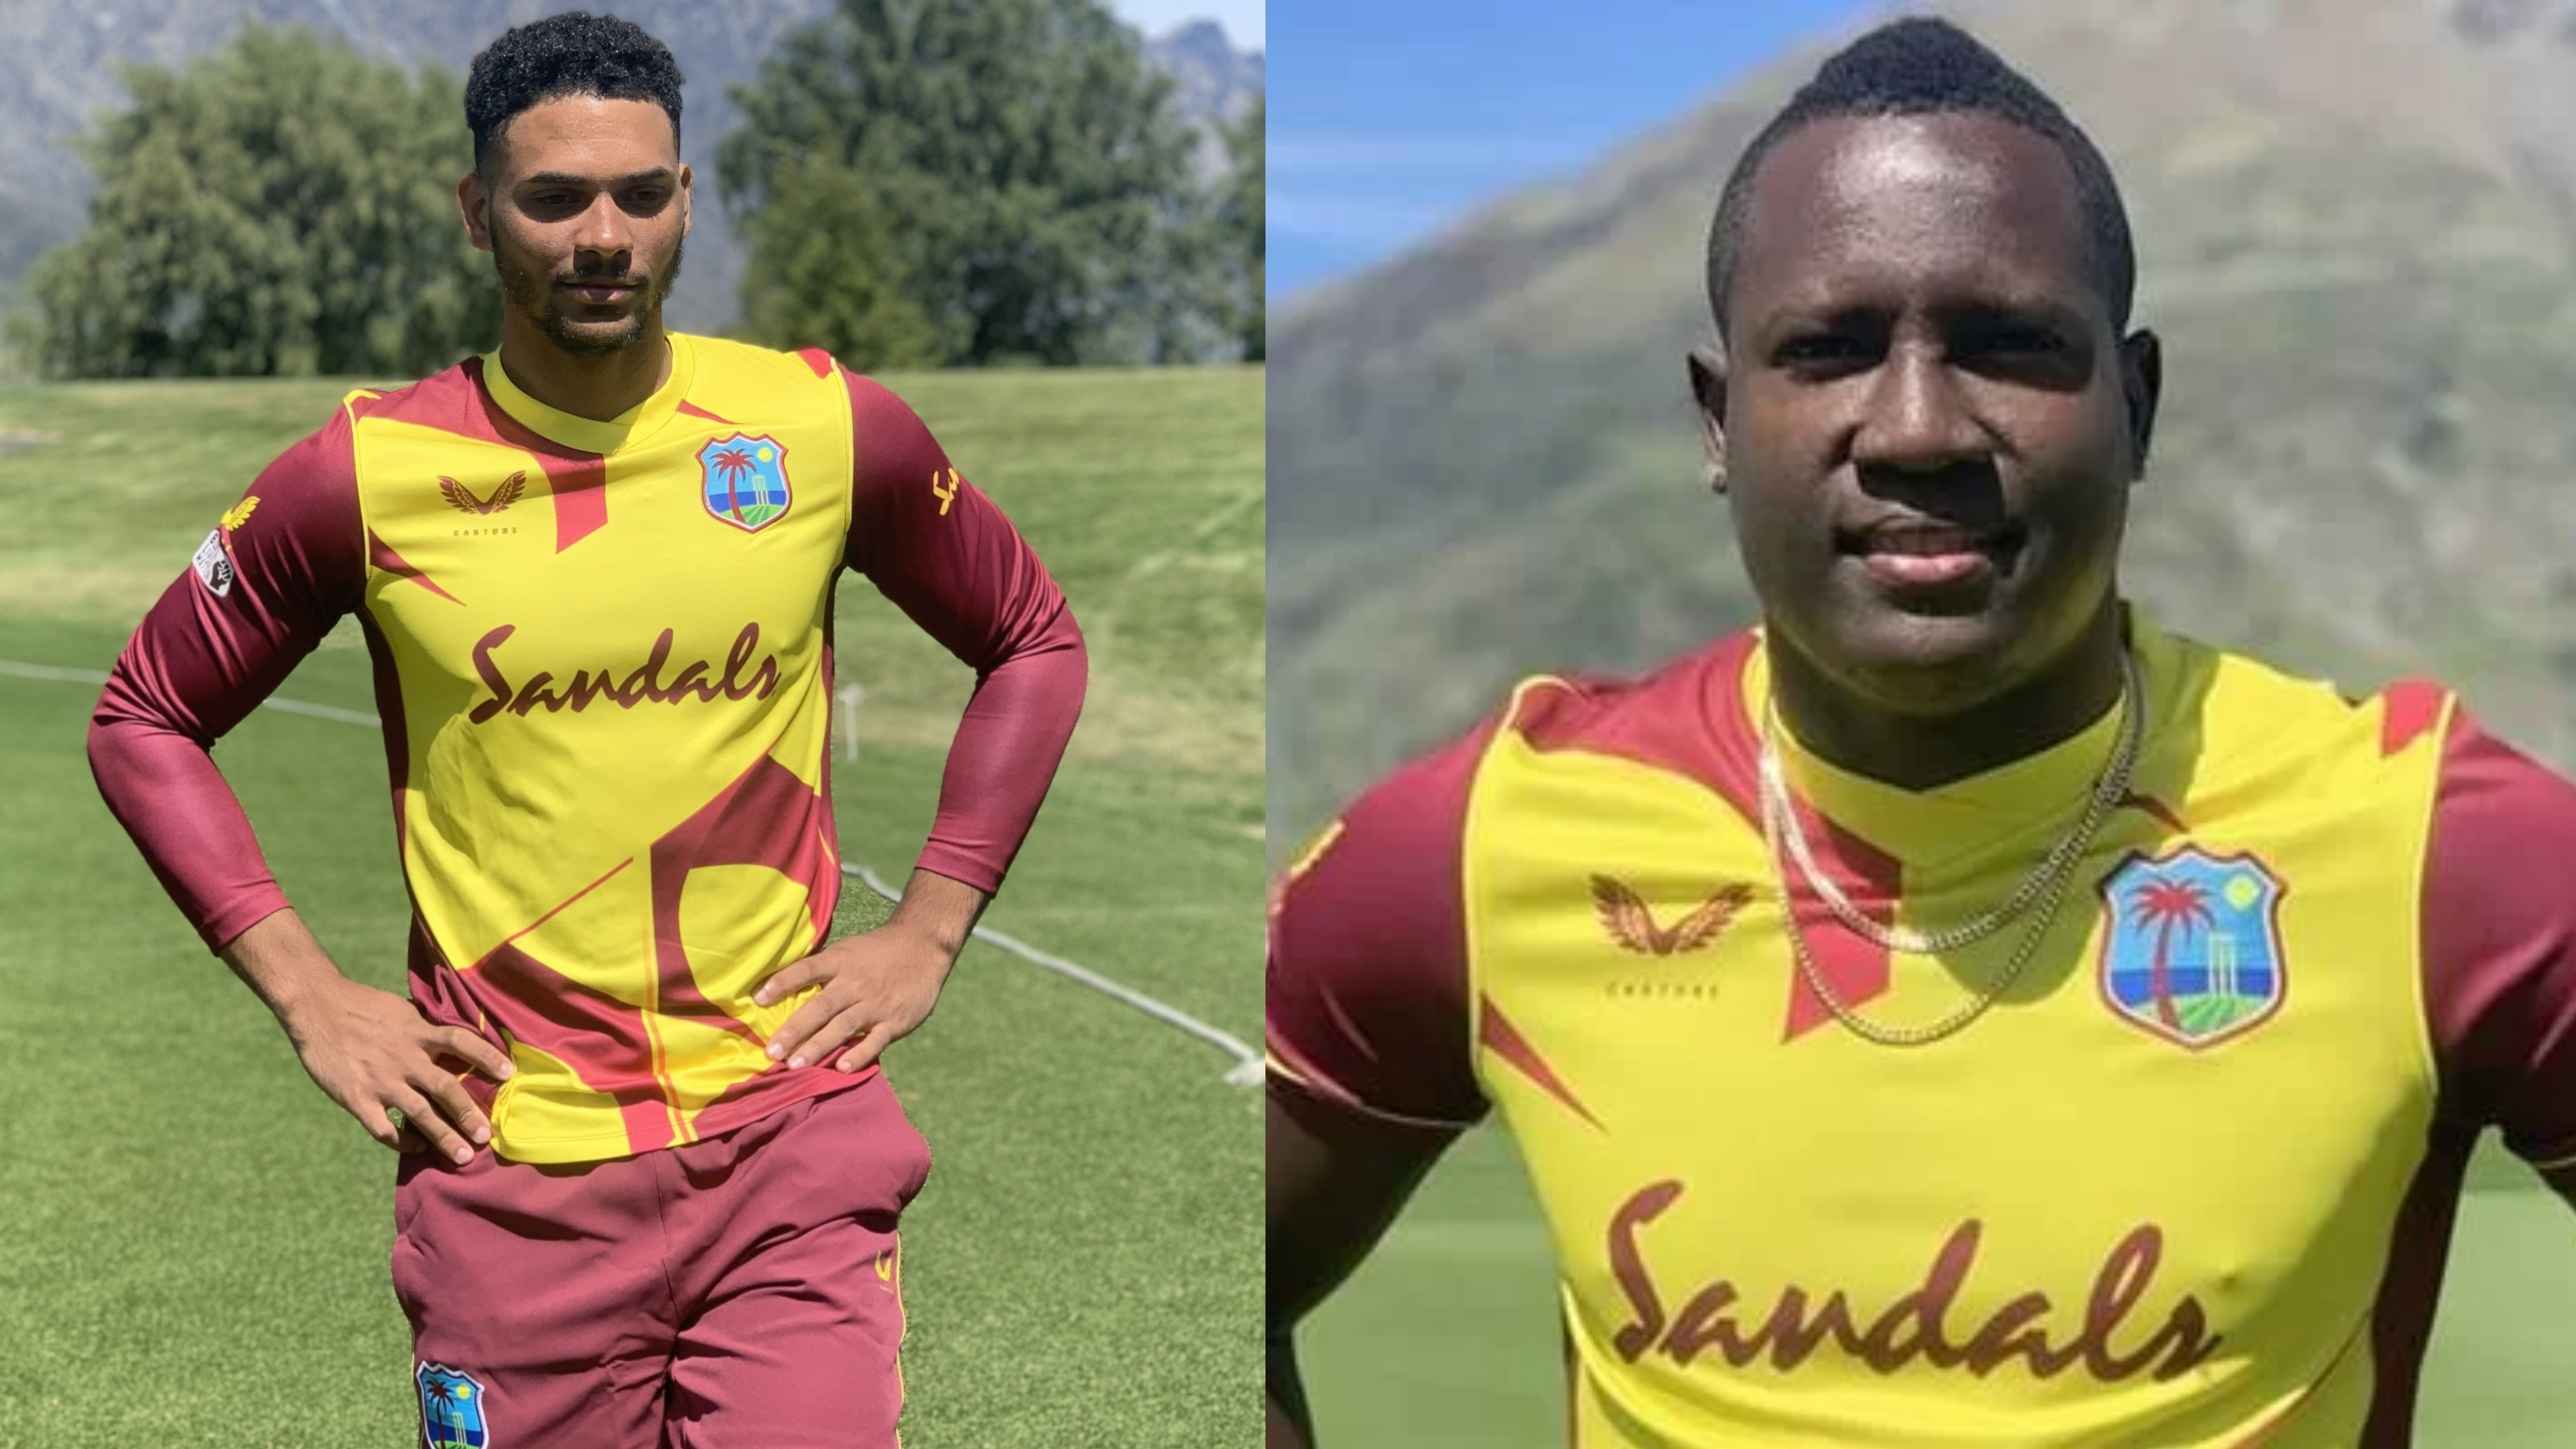 NZ v WI 2020: West Indies unveils new bold T20I jersey as countdown begins for T20 World Cup